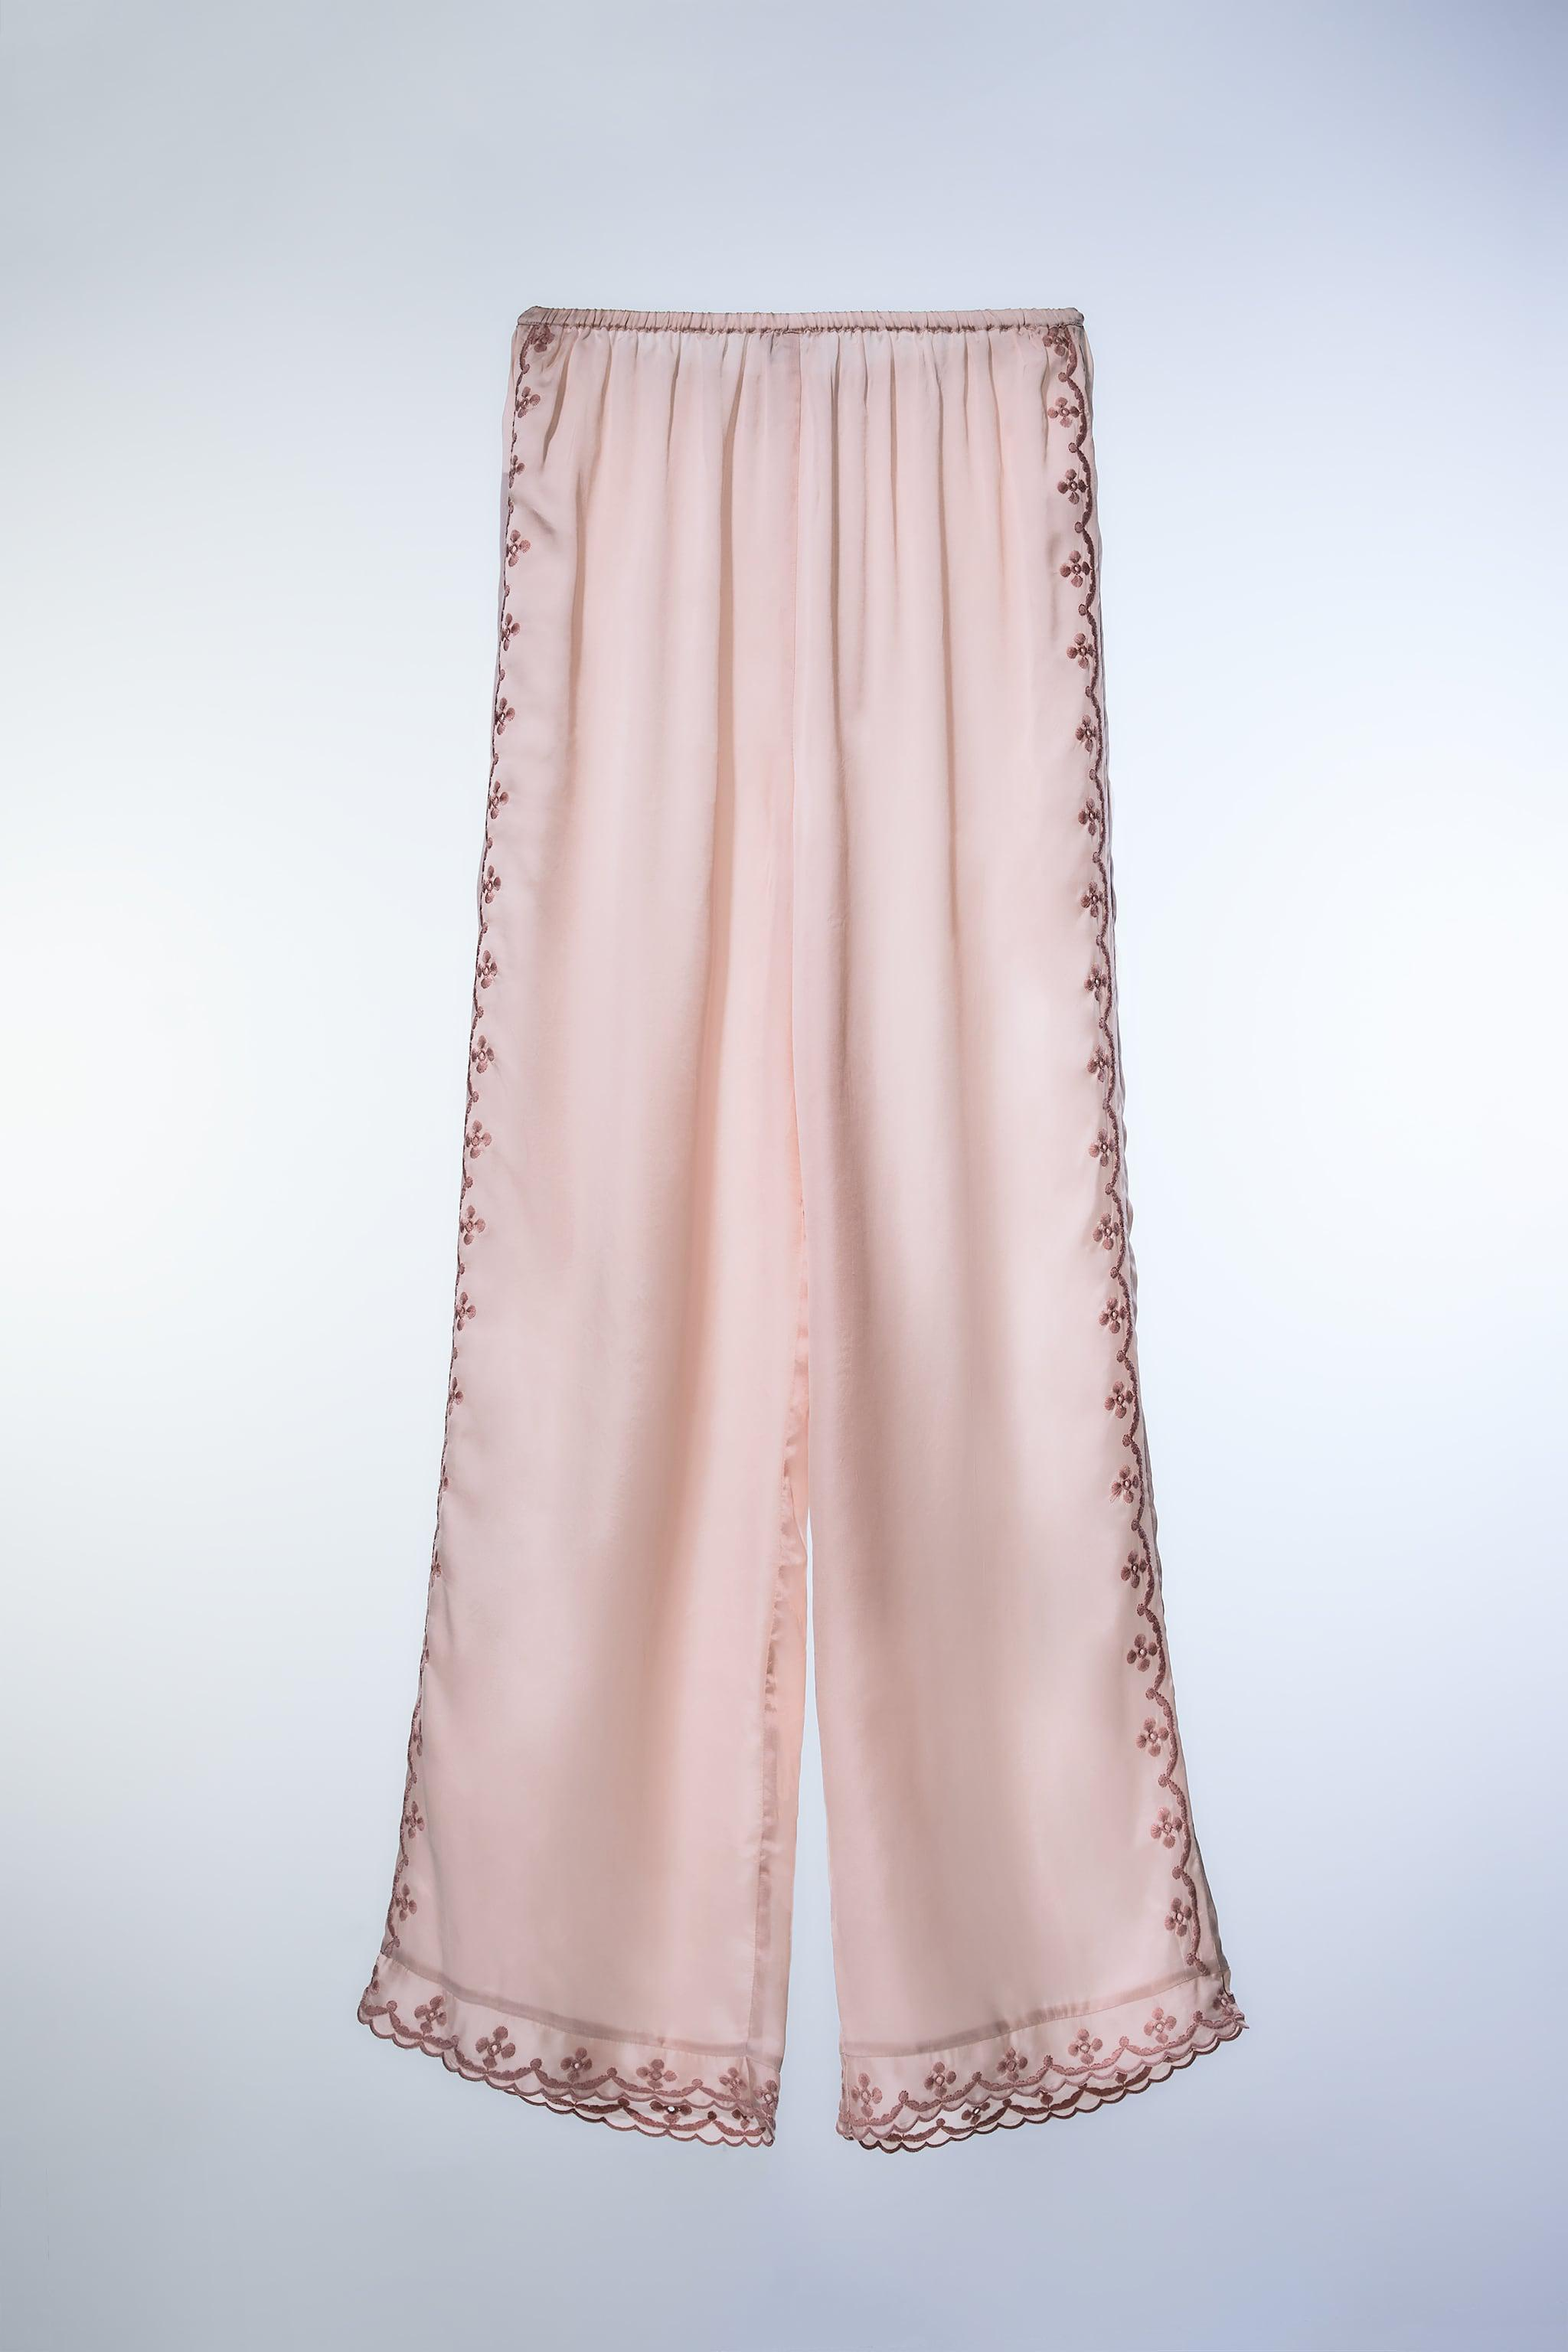 EMBROIDERED FULL LENGTH PANTS 1